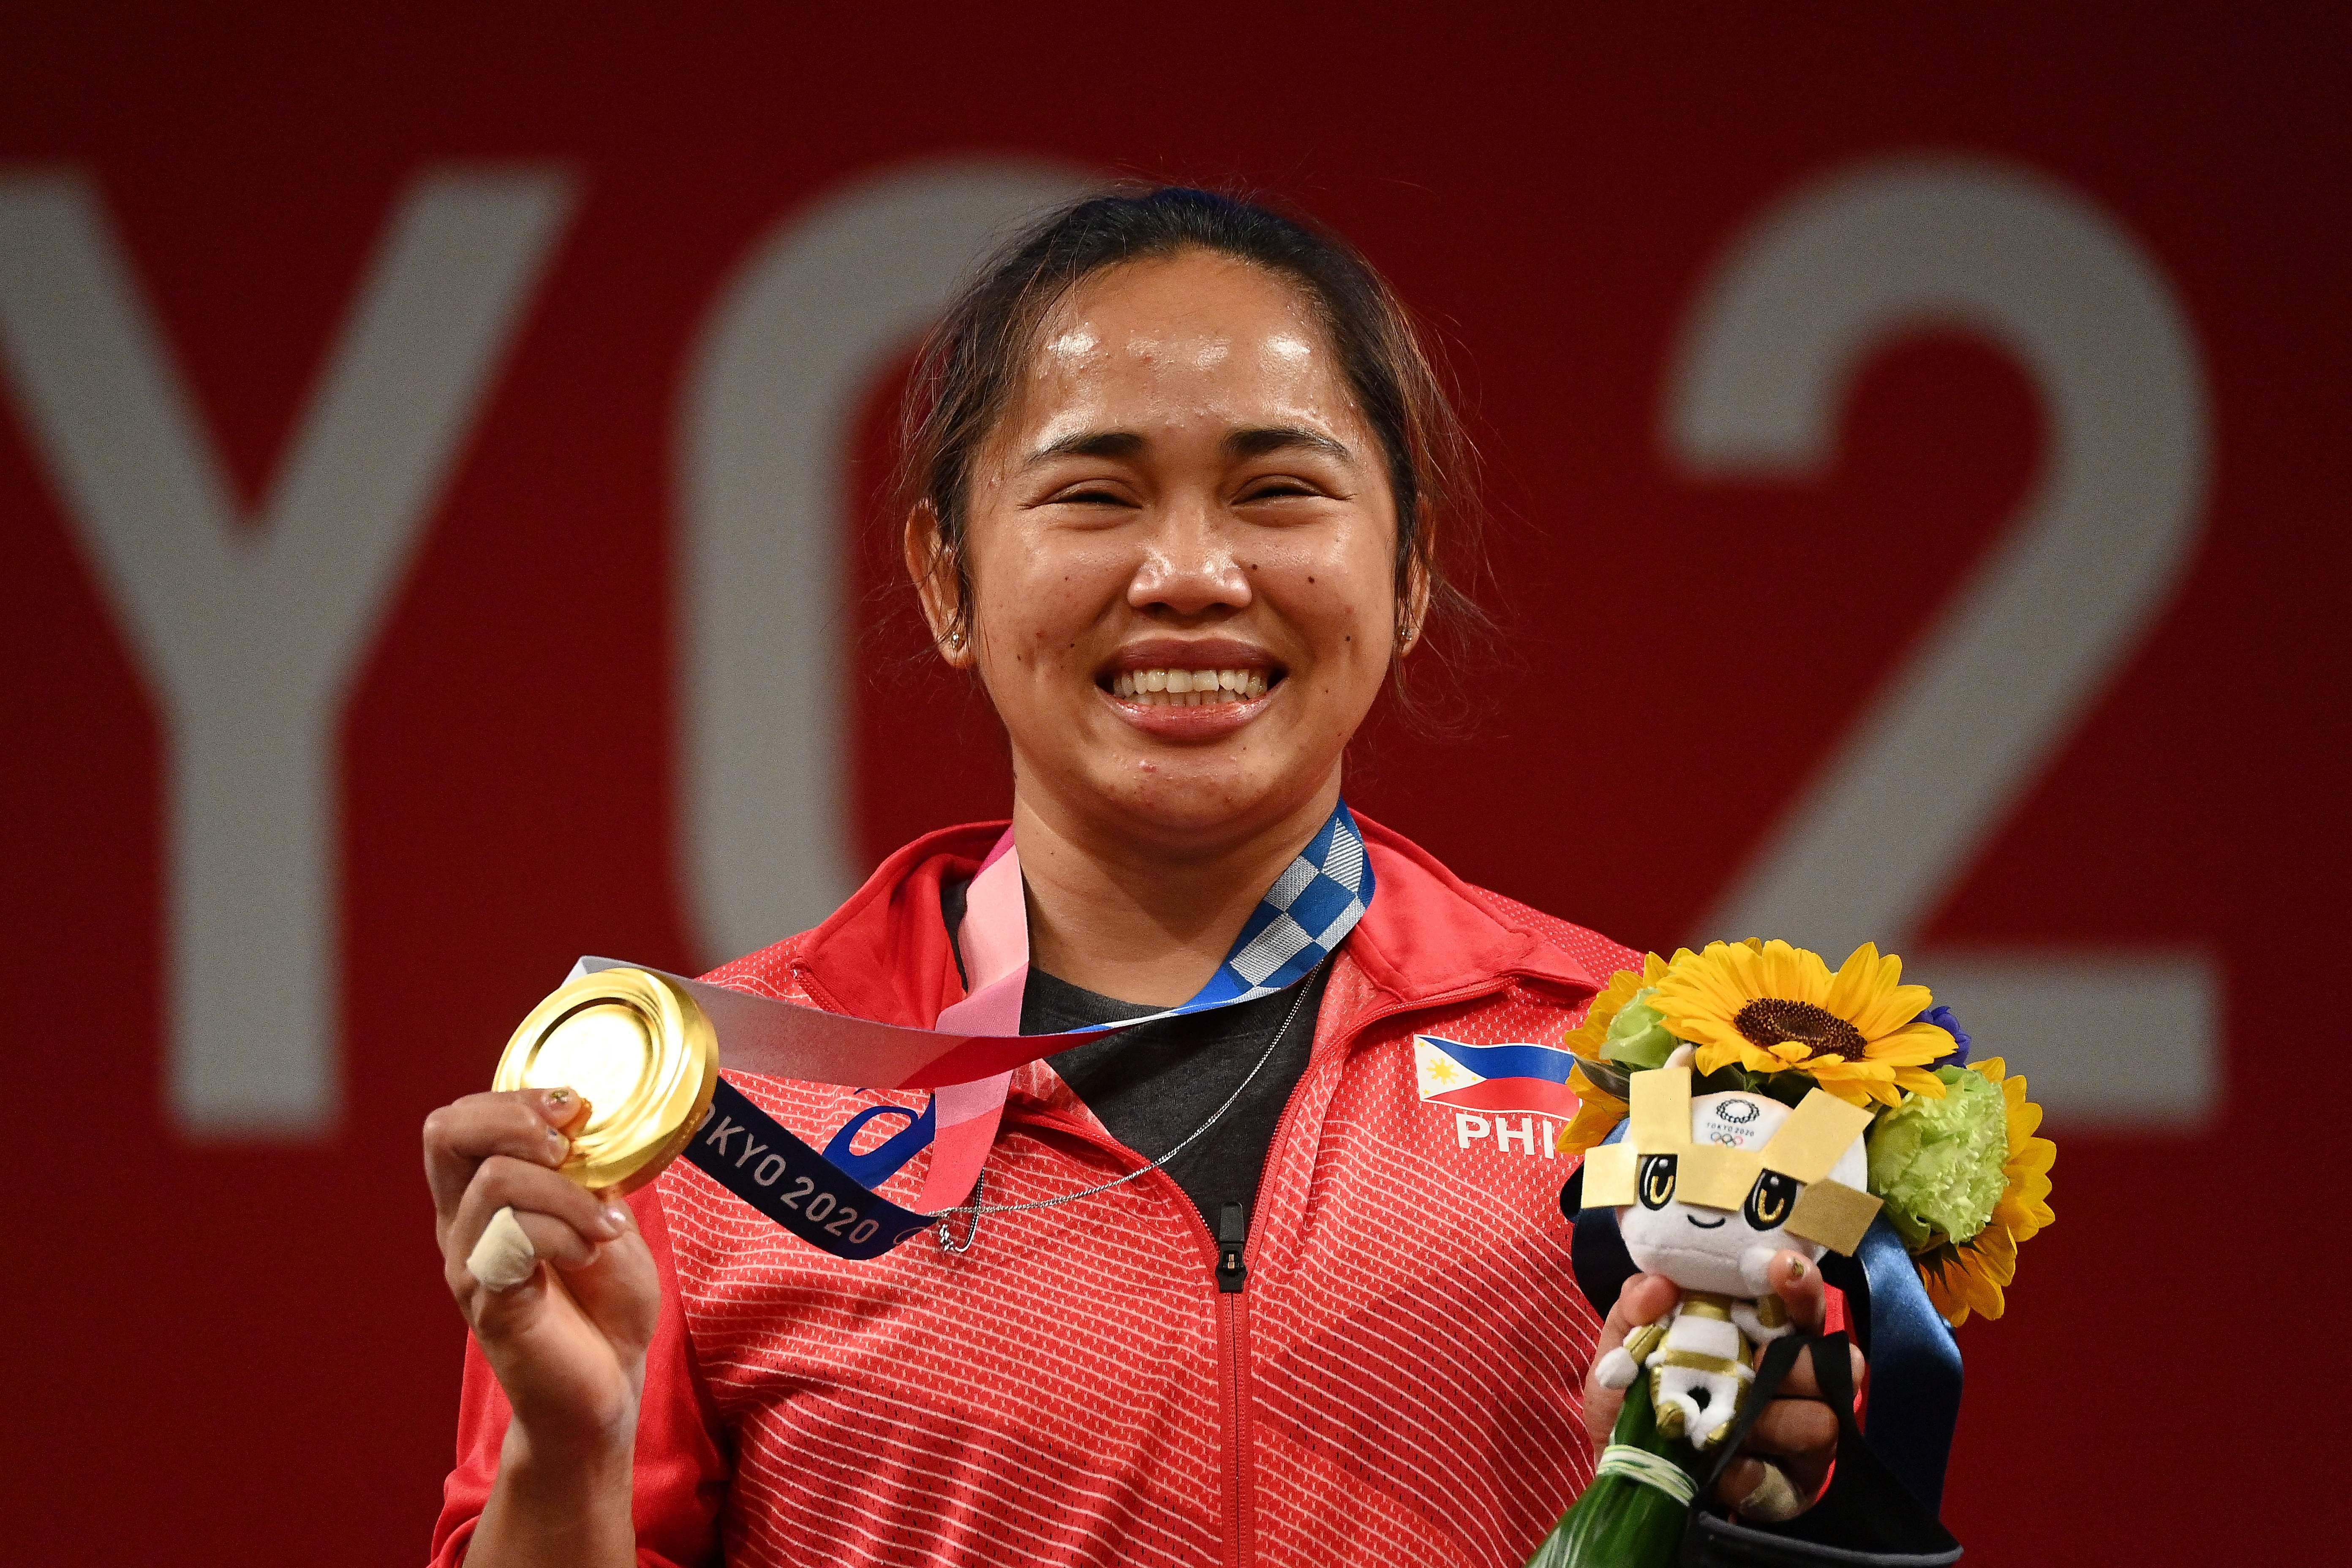 Philippines' first Olympic gold medalist was once linked to an alleged plot to oust Duterte